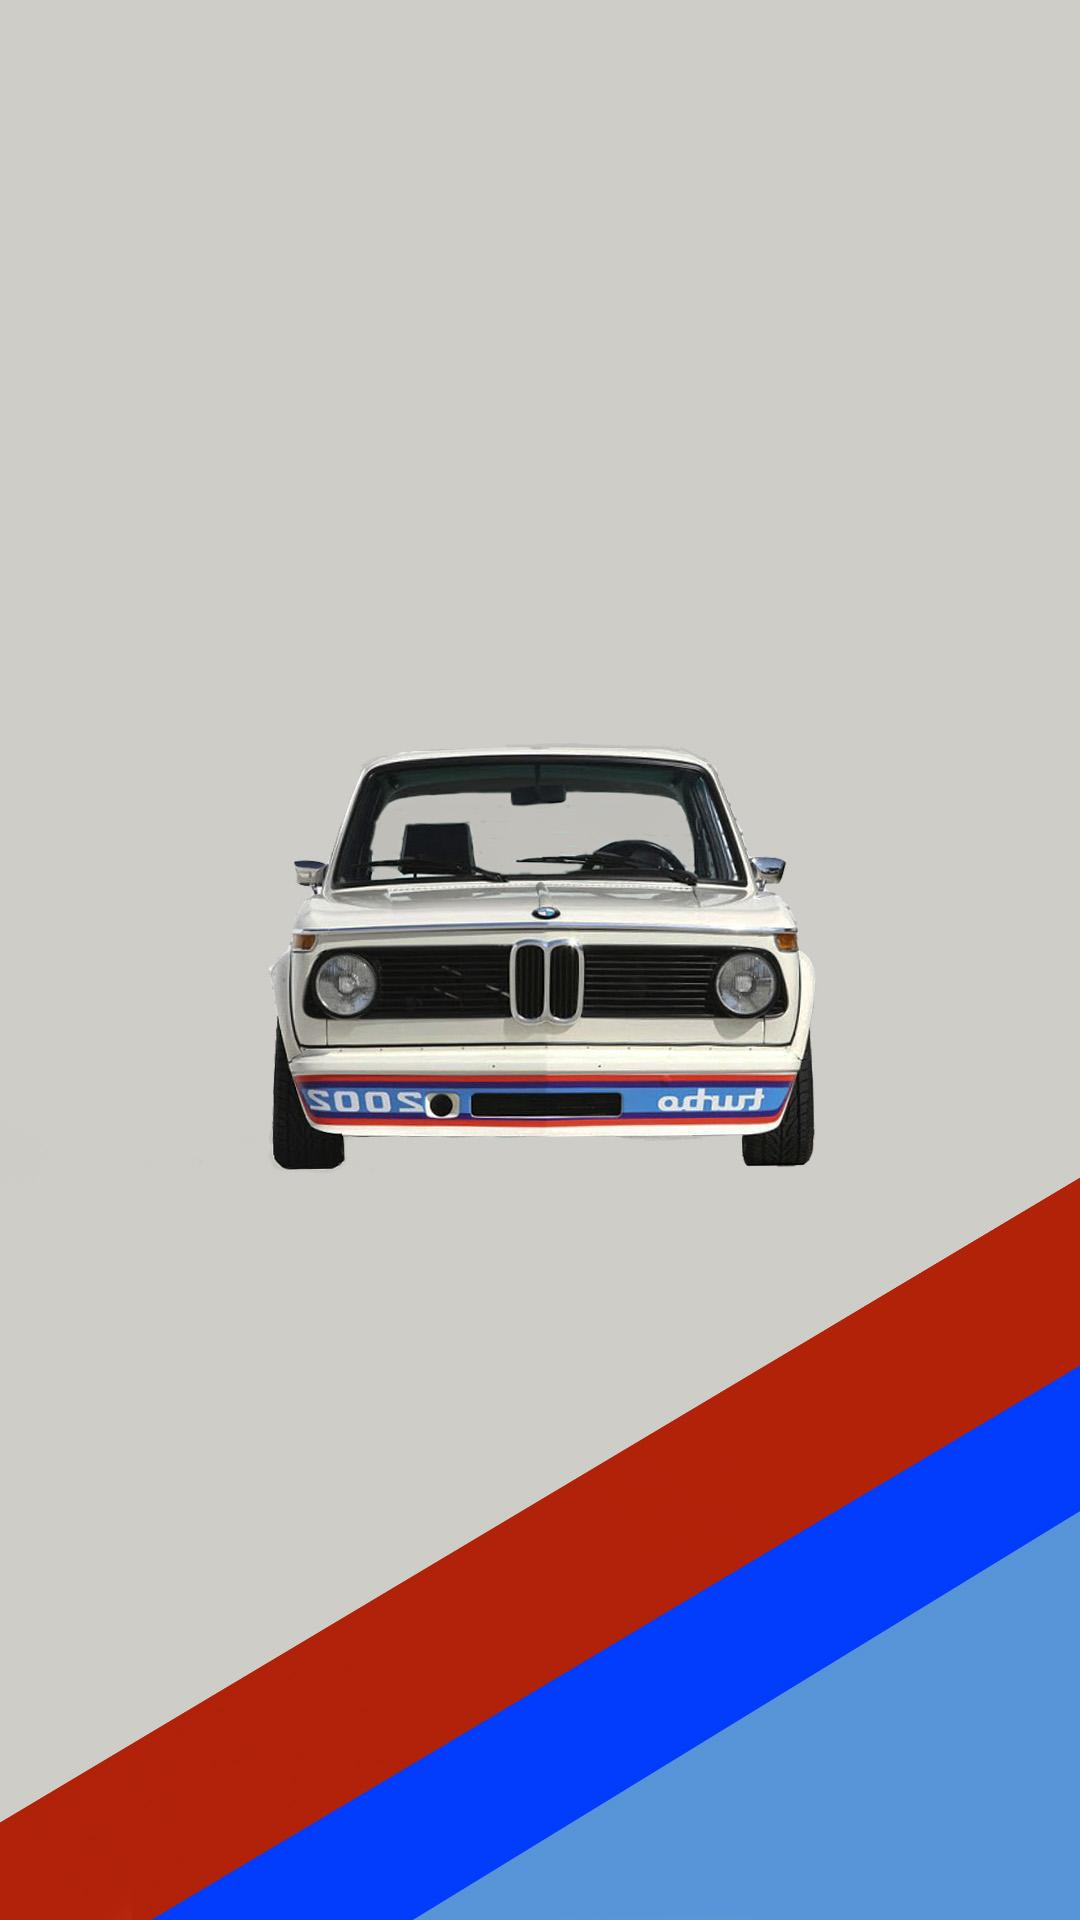 Bmw 2002 Turbo Wallpaper Iphone 1080x1920 Download Hd Wallpaper Wallpapertip